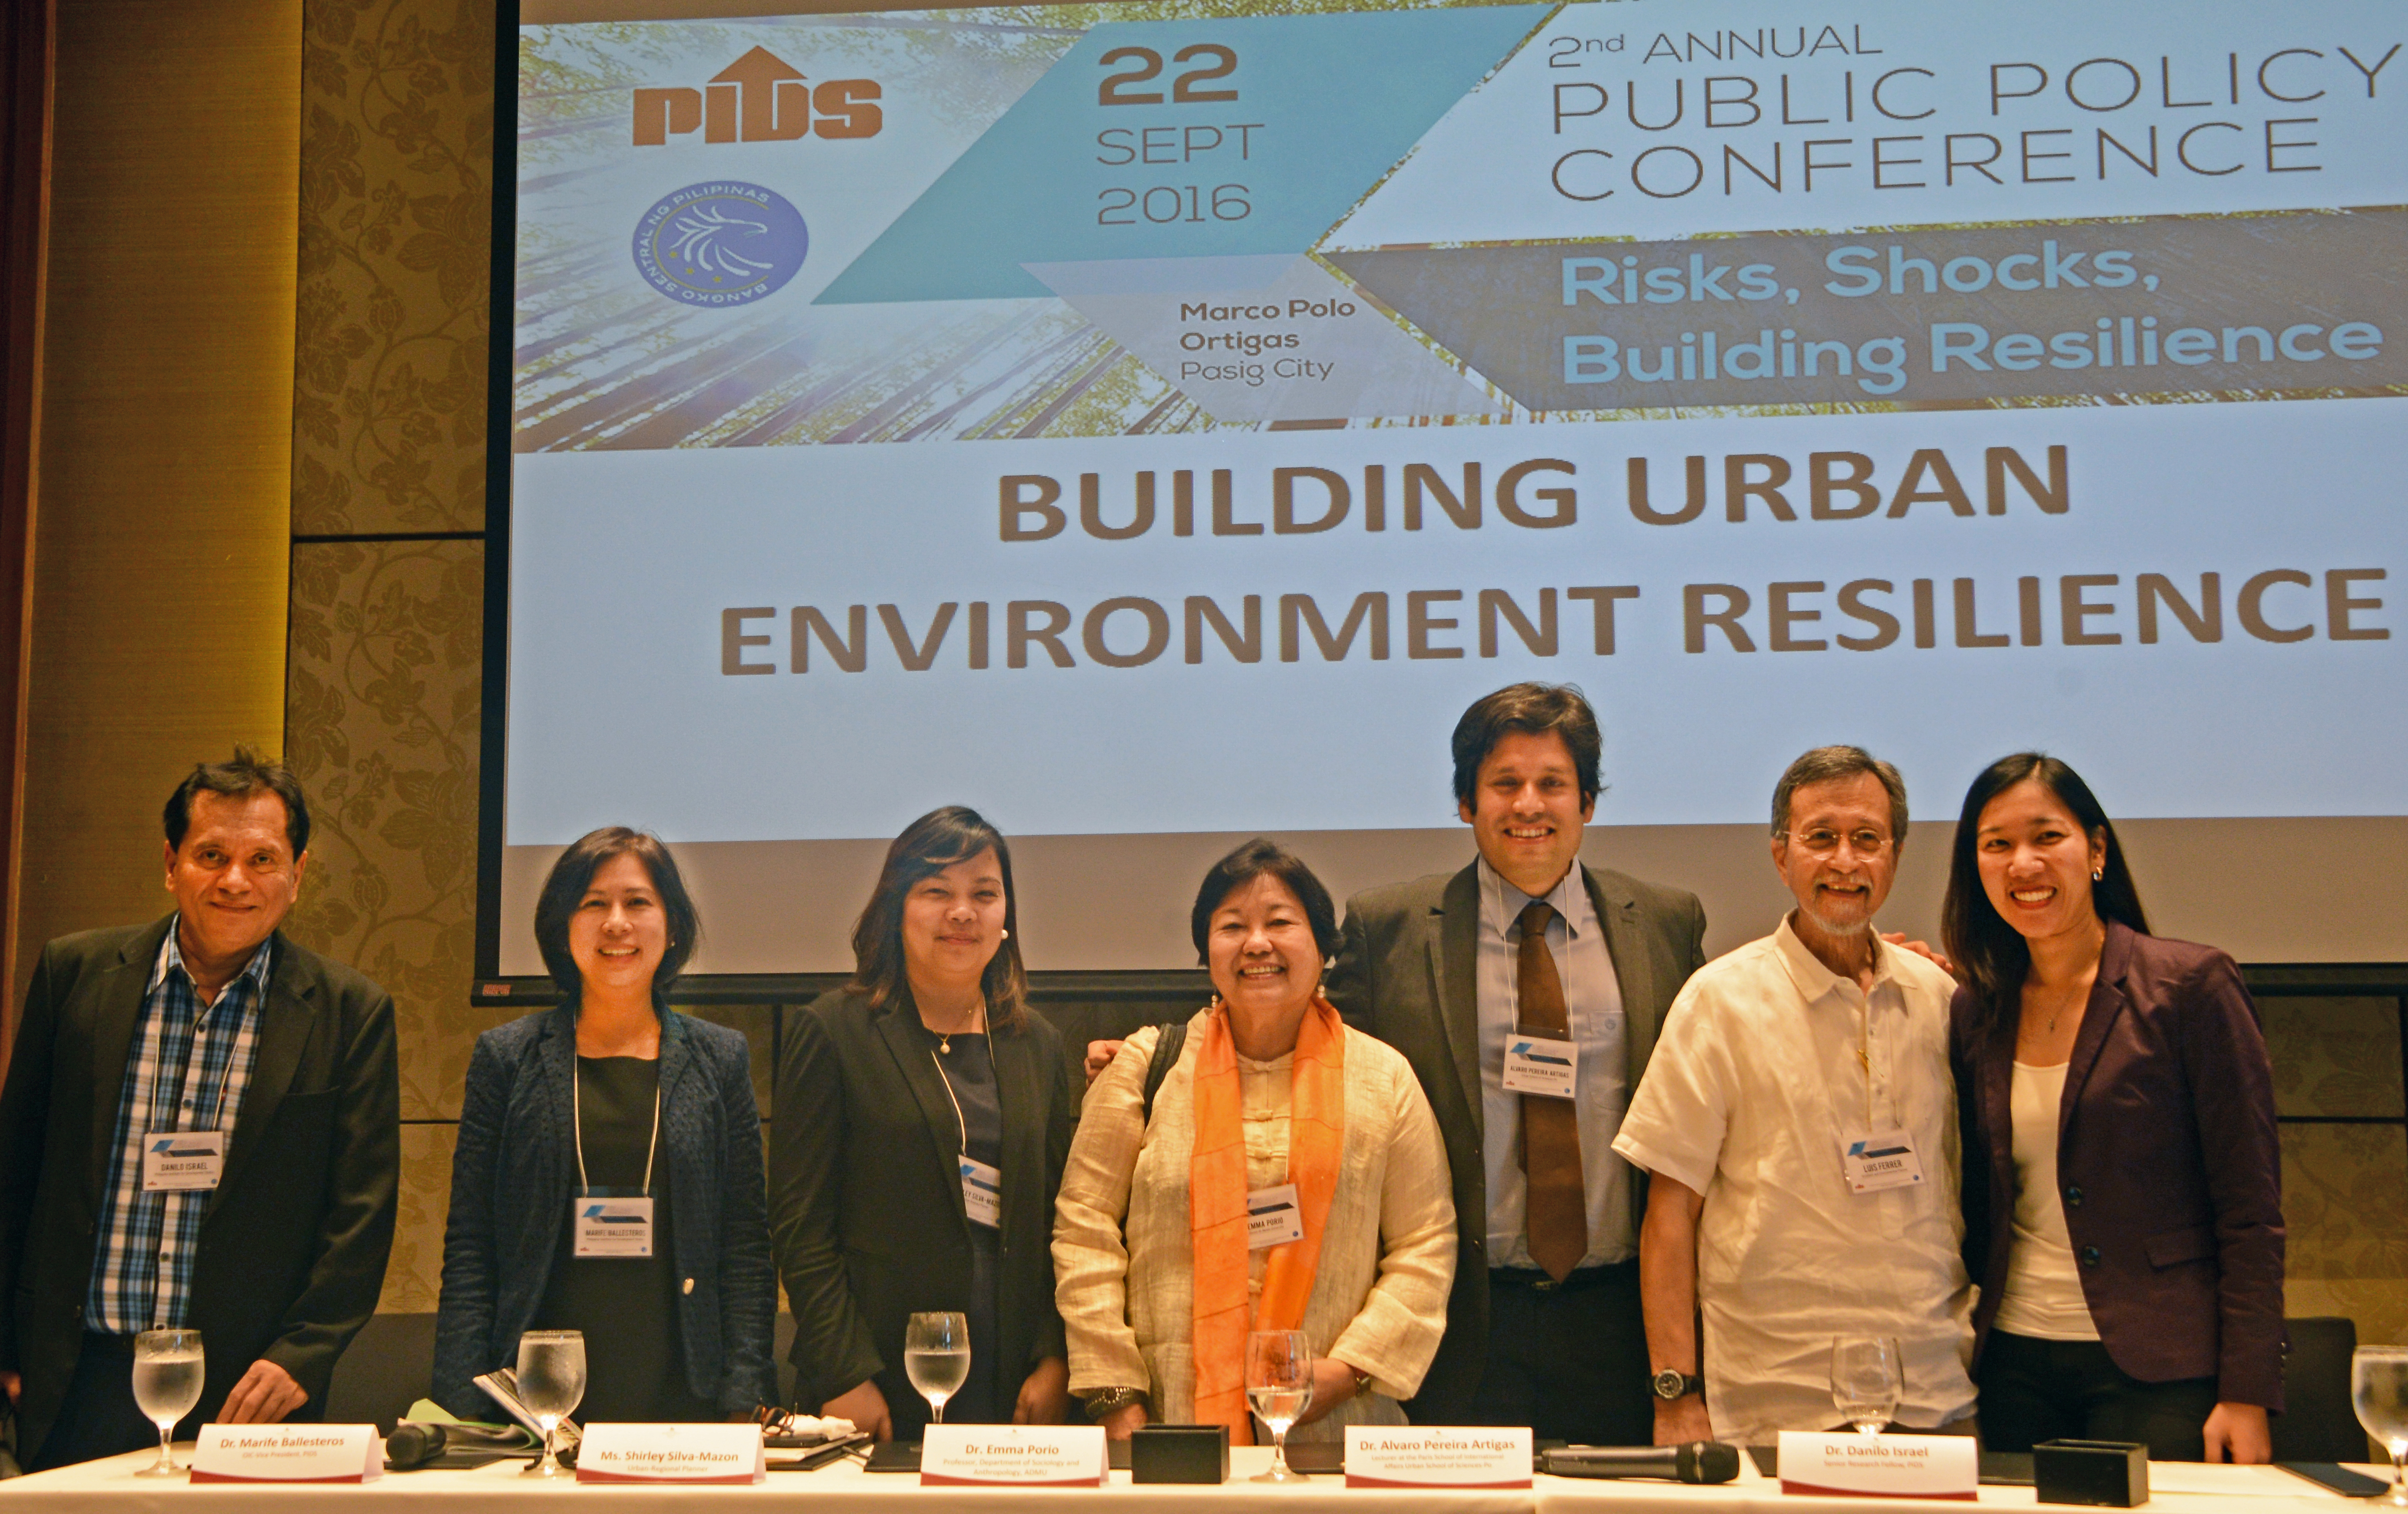 Experts recommend adopting a holistic approach to urban environment resilience